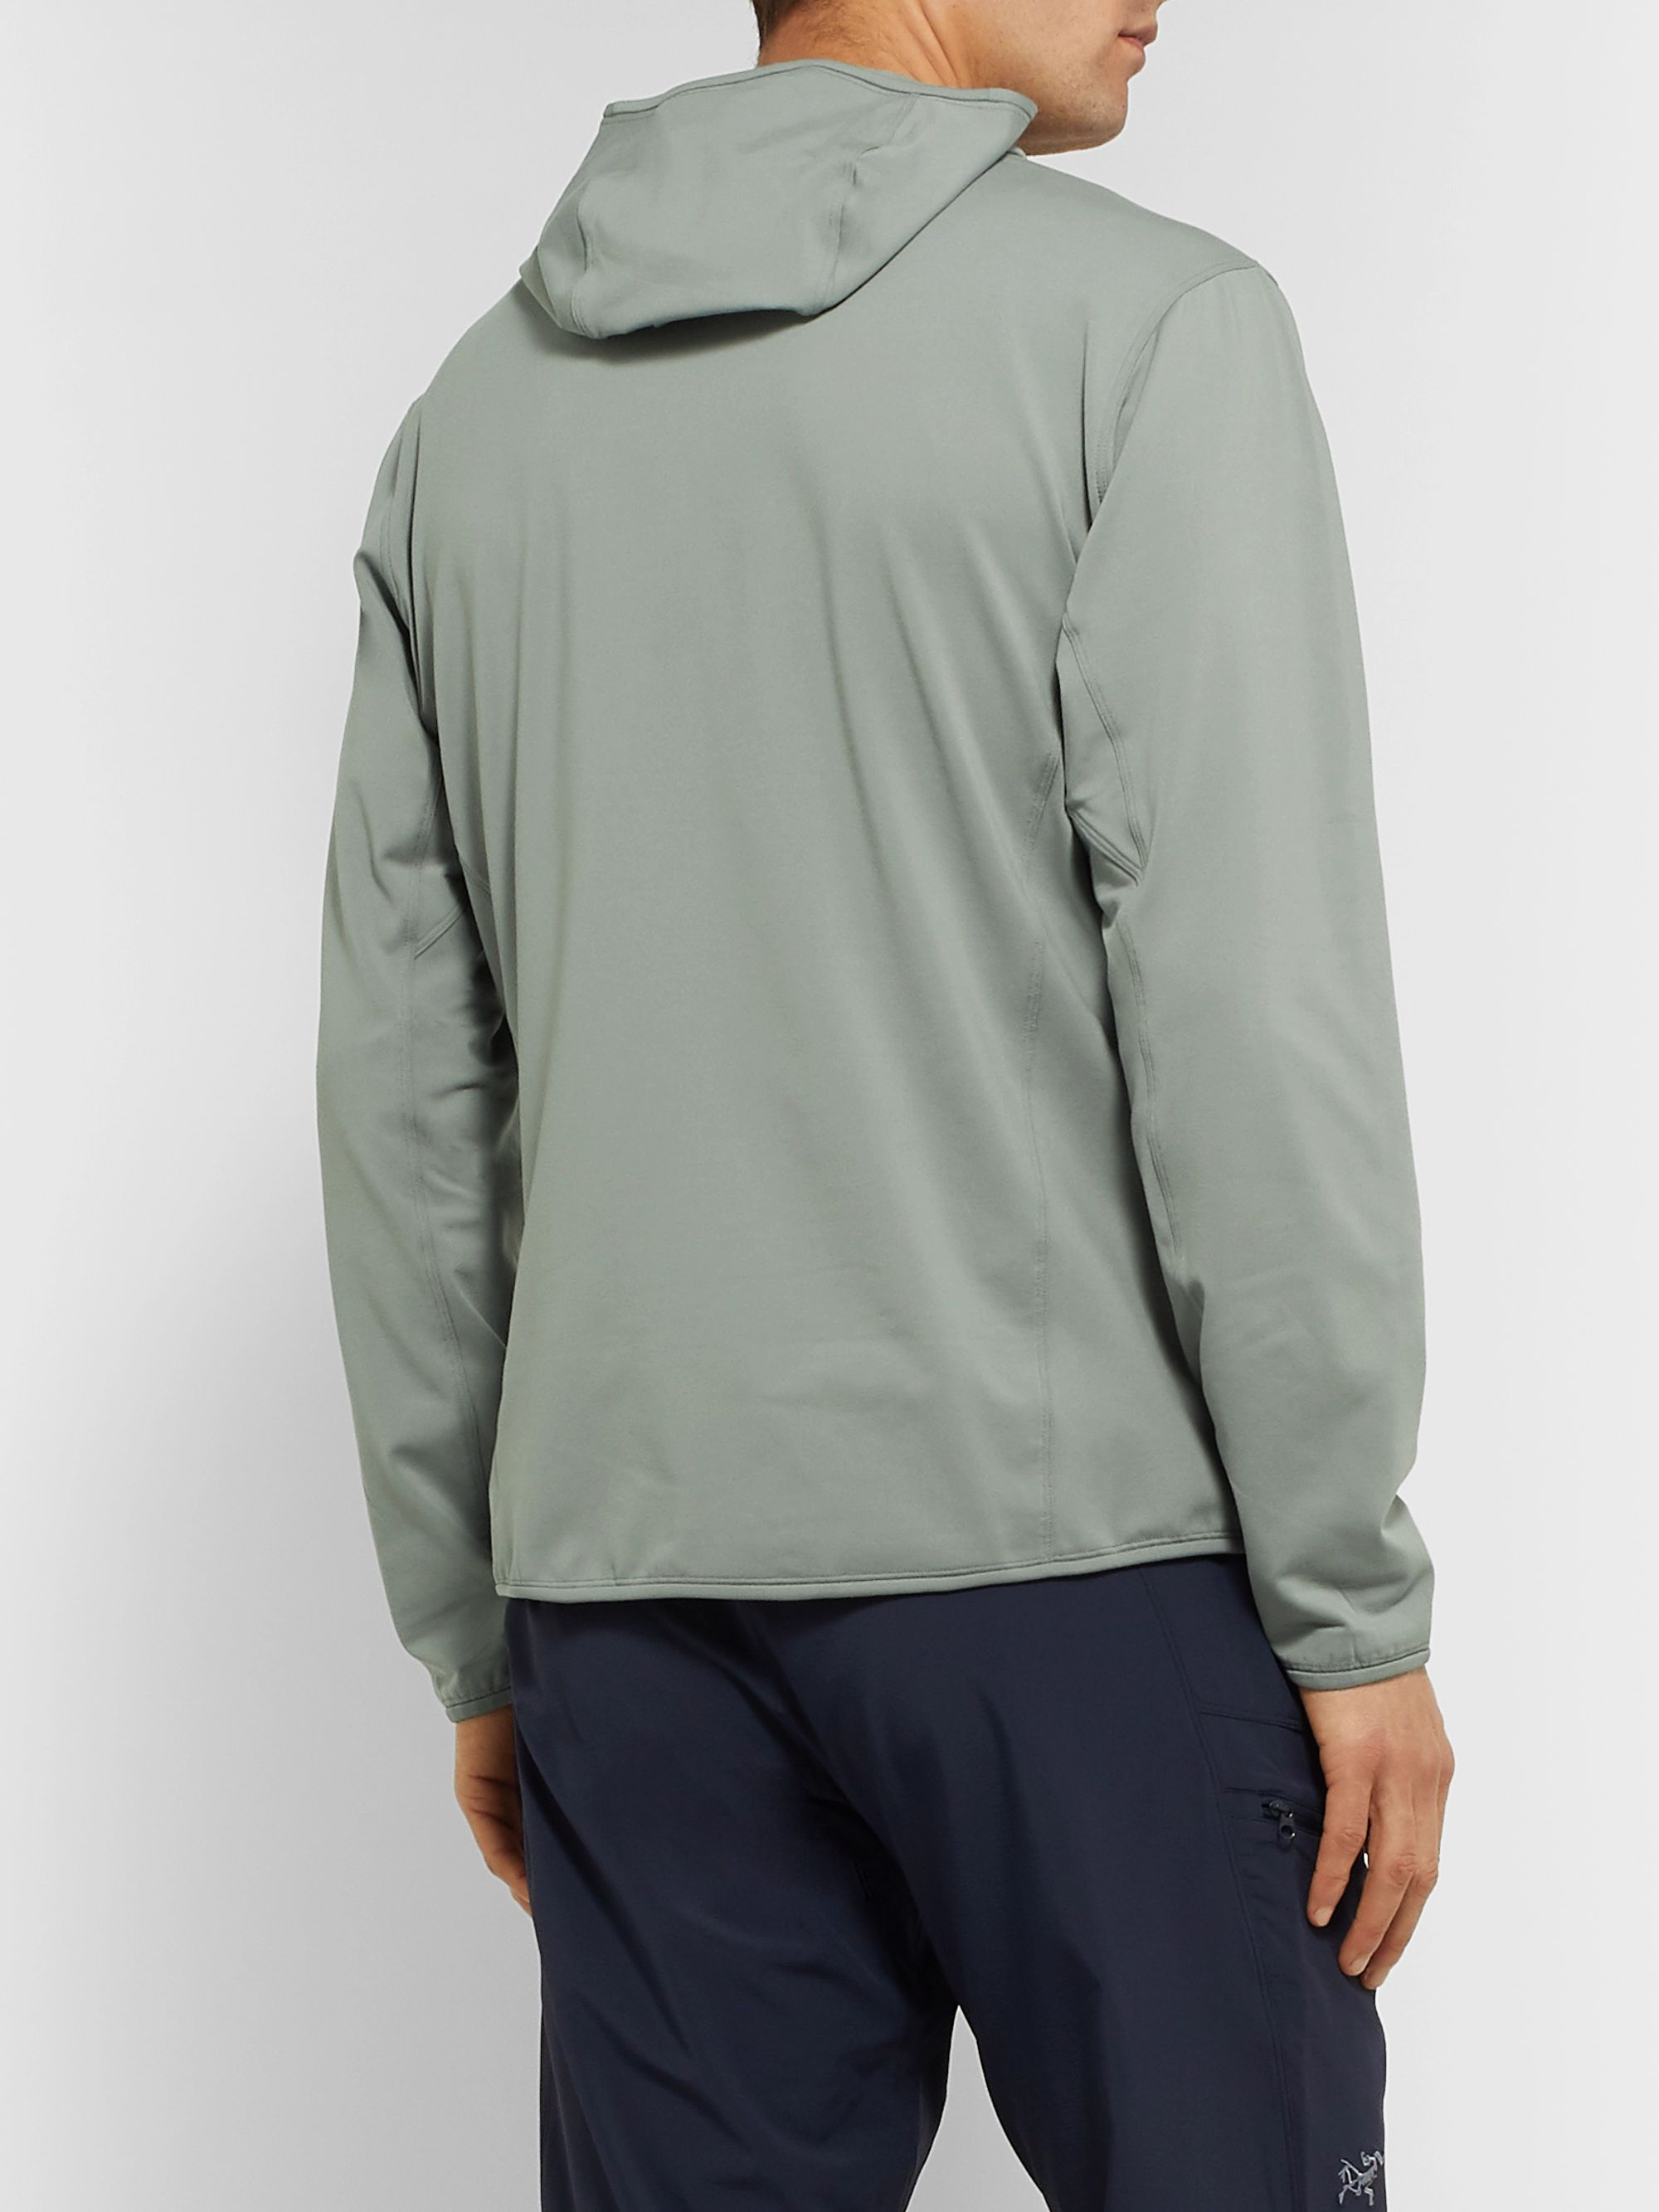 Arc'teryx Kyanite Polartec Power Stretch Pro Zip-Up Hoodie